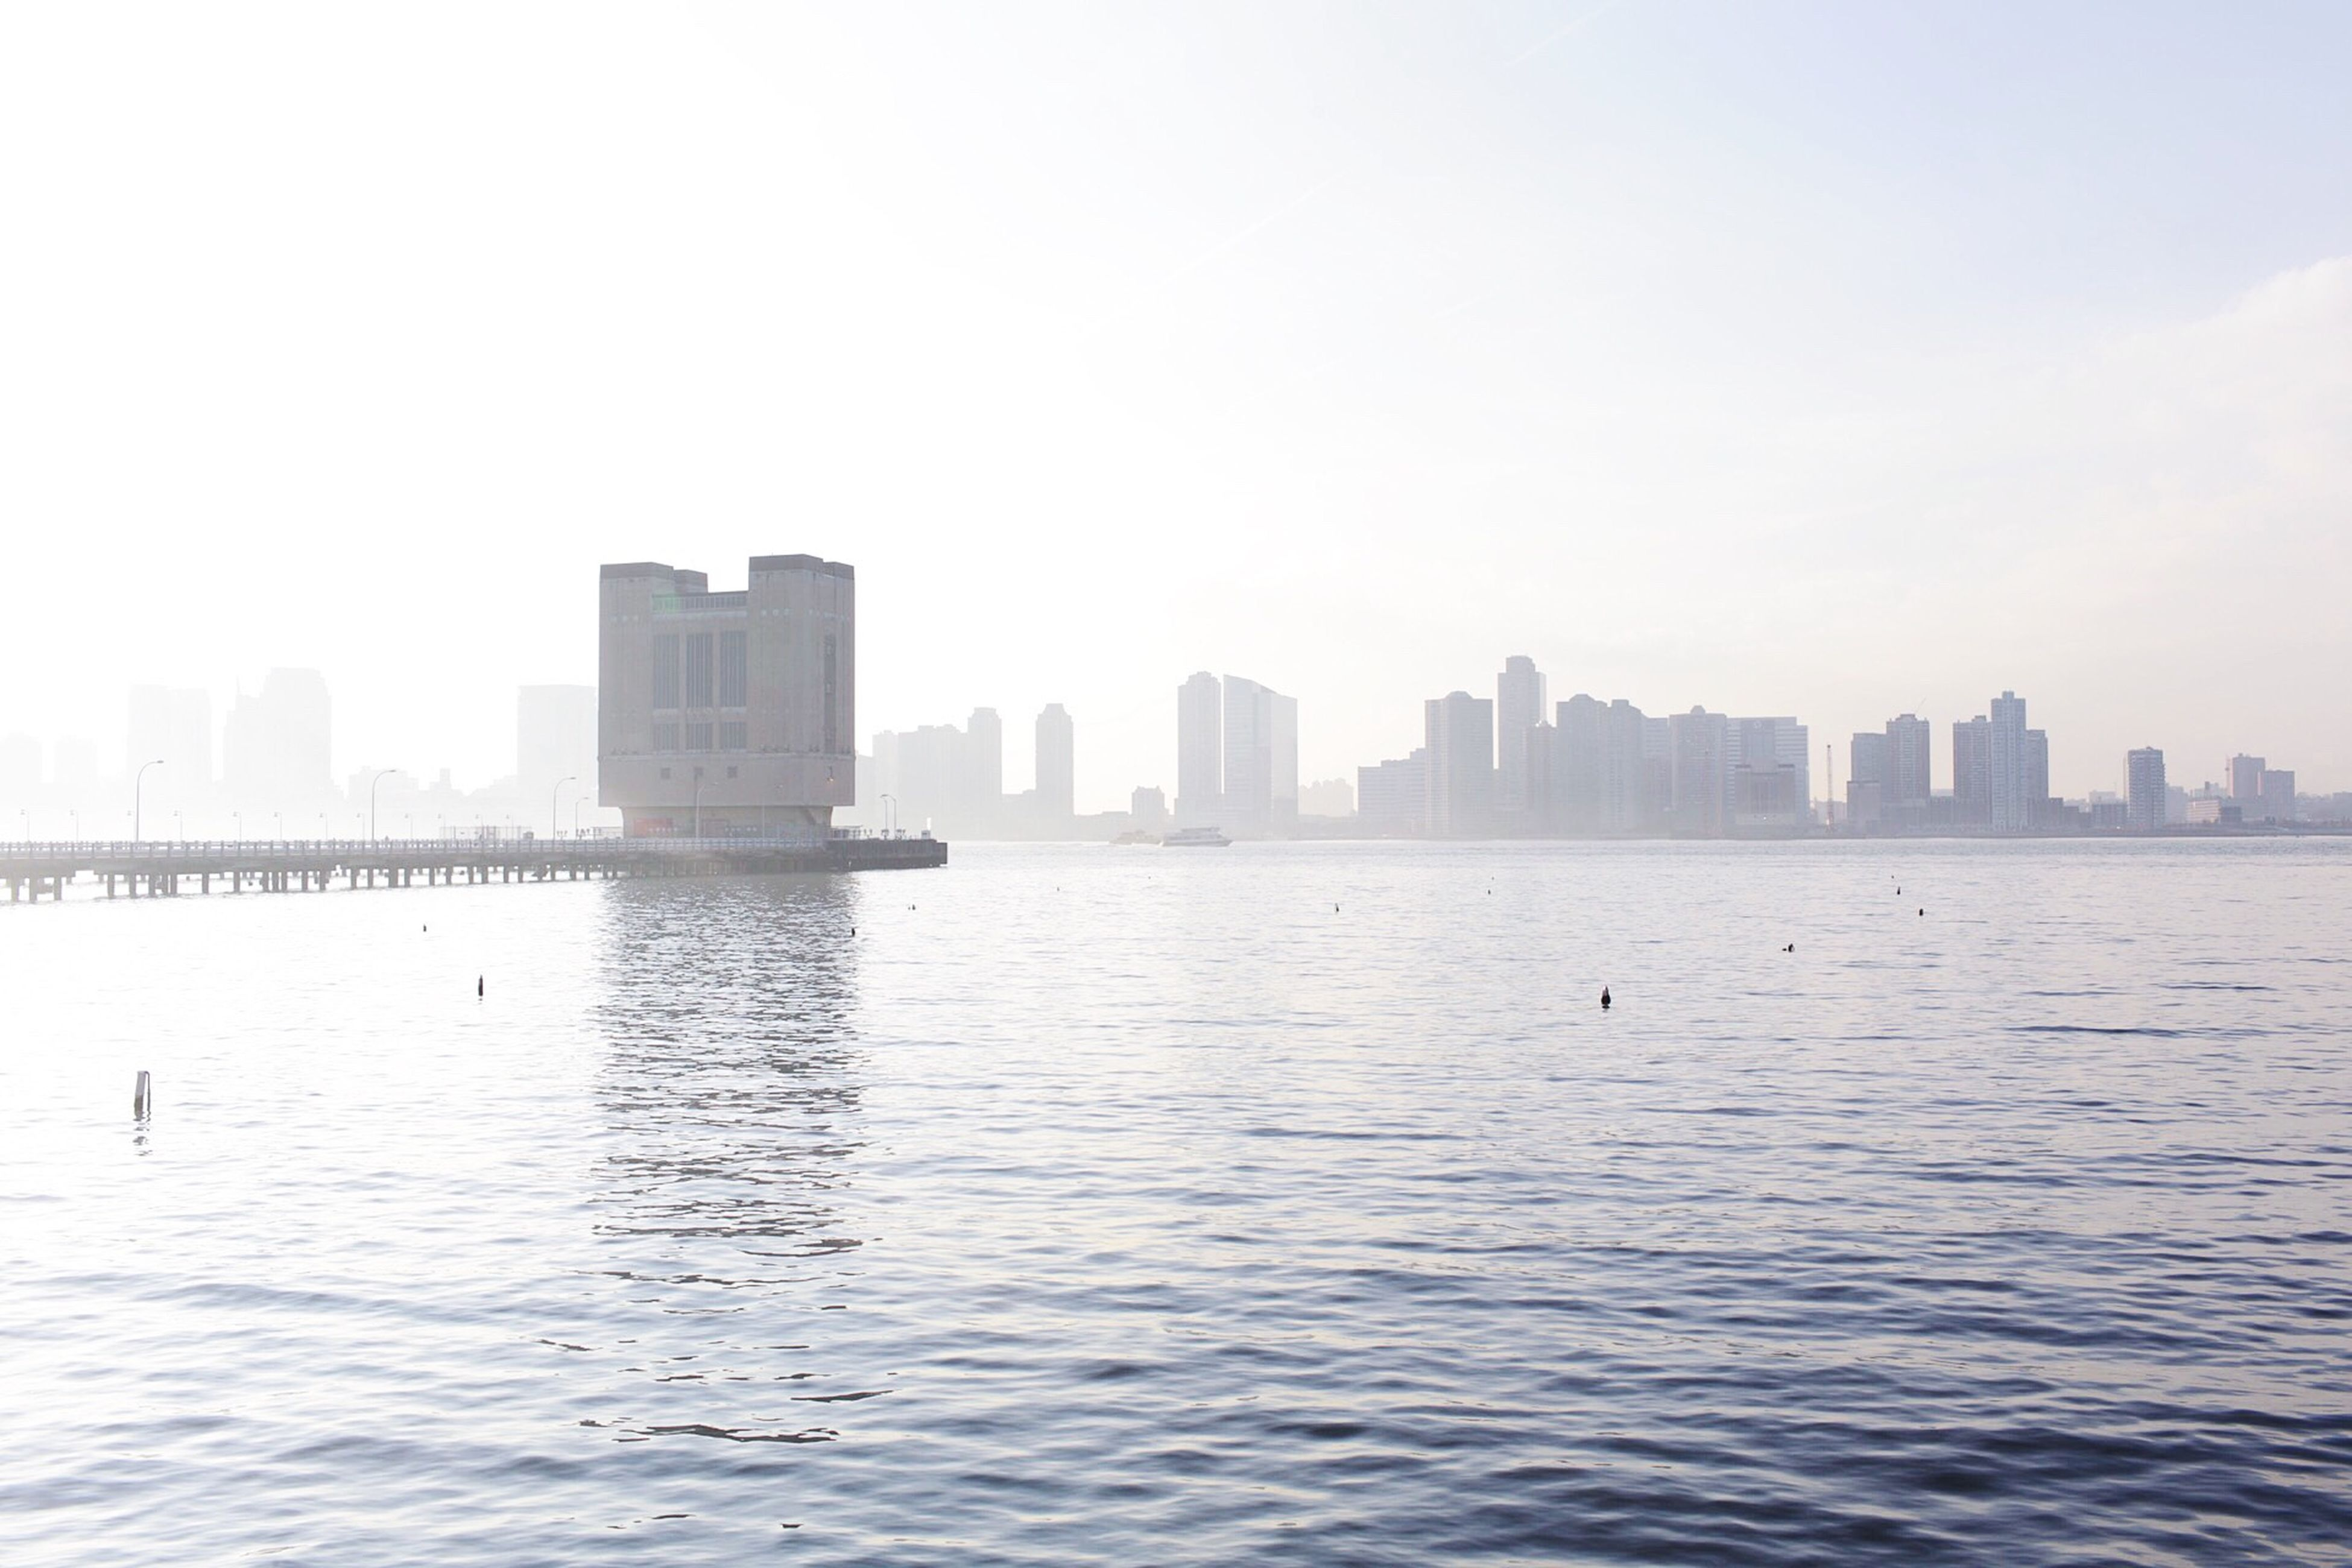 building exterior, city, water, waterfront, architecture, built structure, cityscape, skyscraper, clear sky, urban skyline, copy space, river, sea, rippled, skyline, tower, sky, mid distance, office building, tall - high